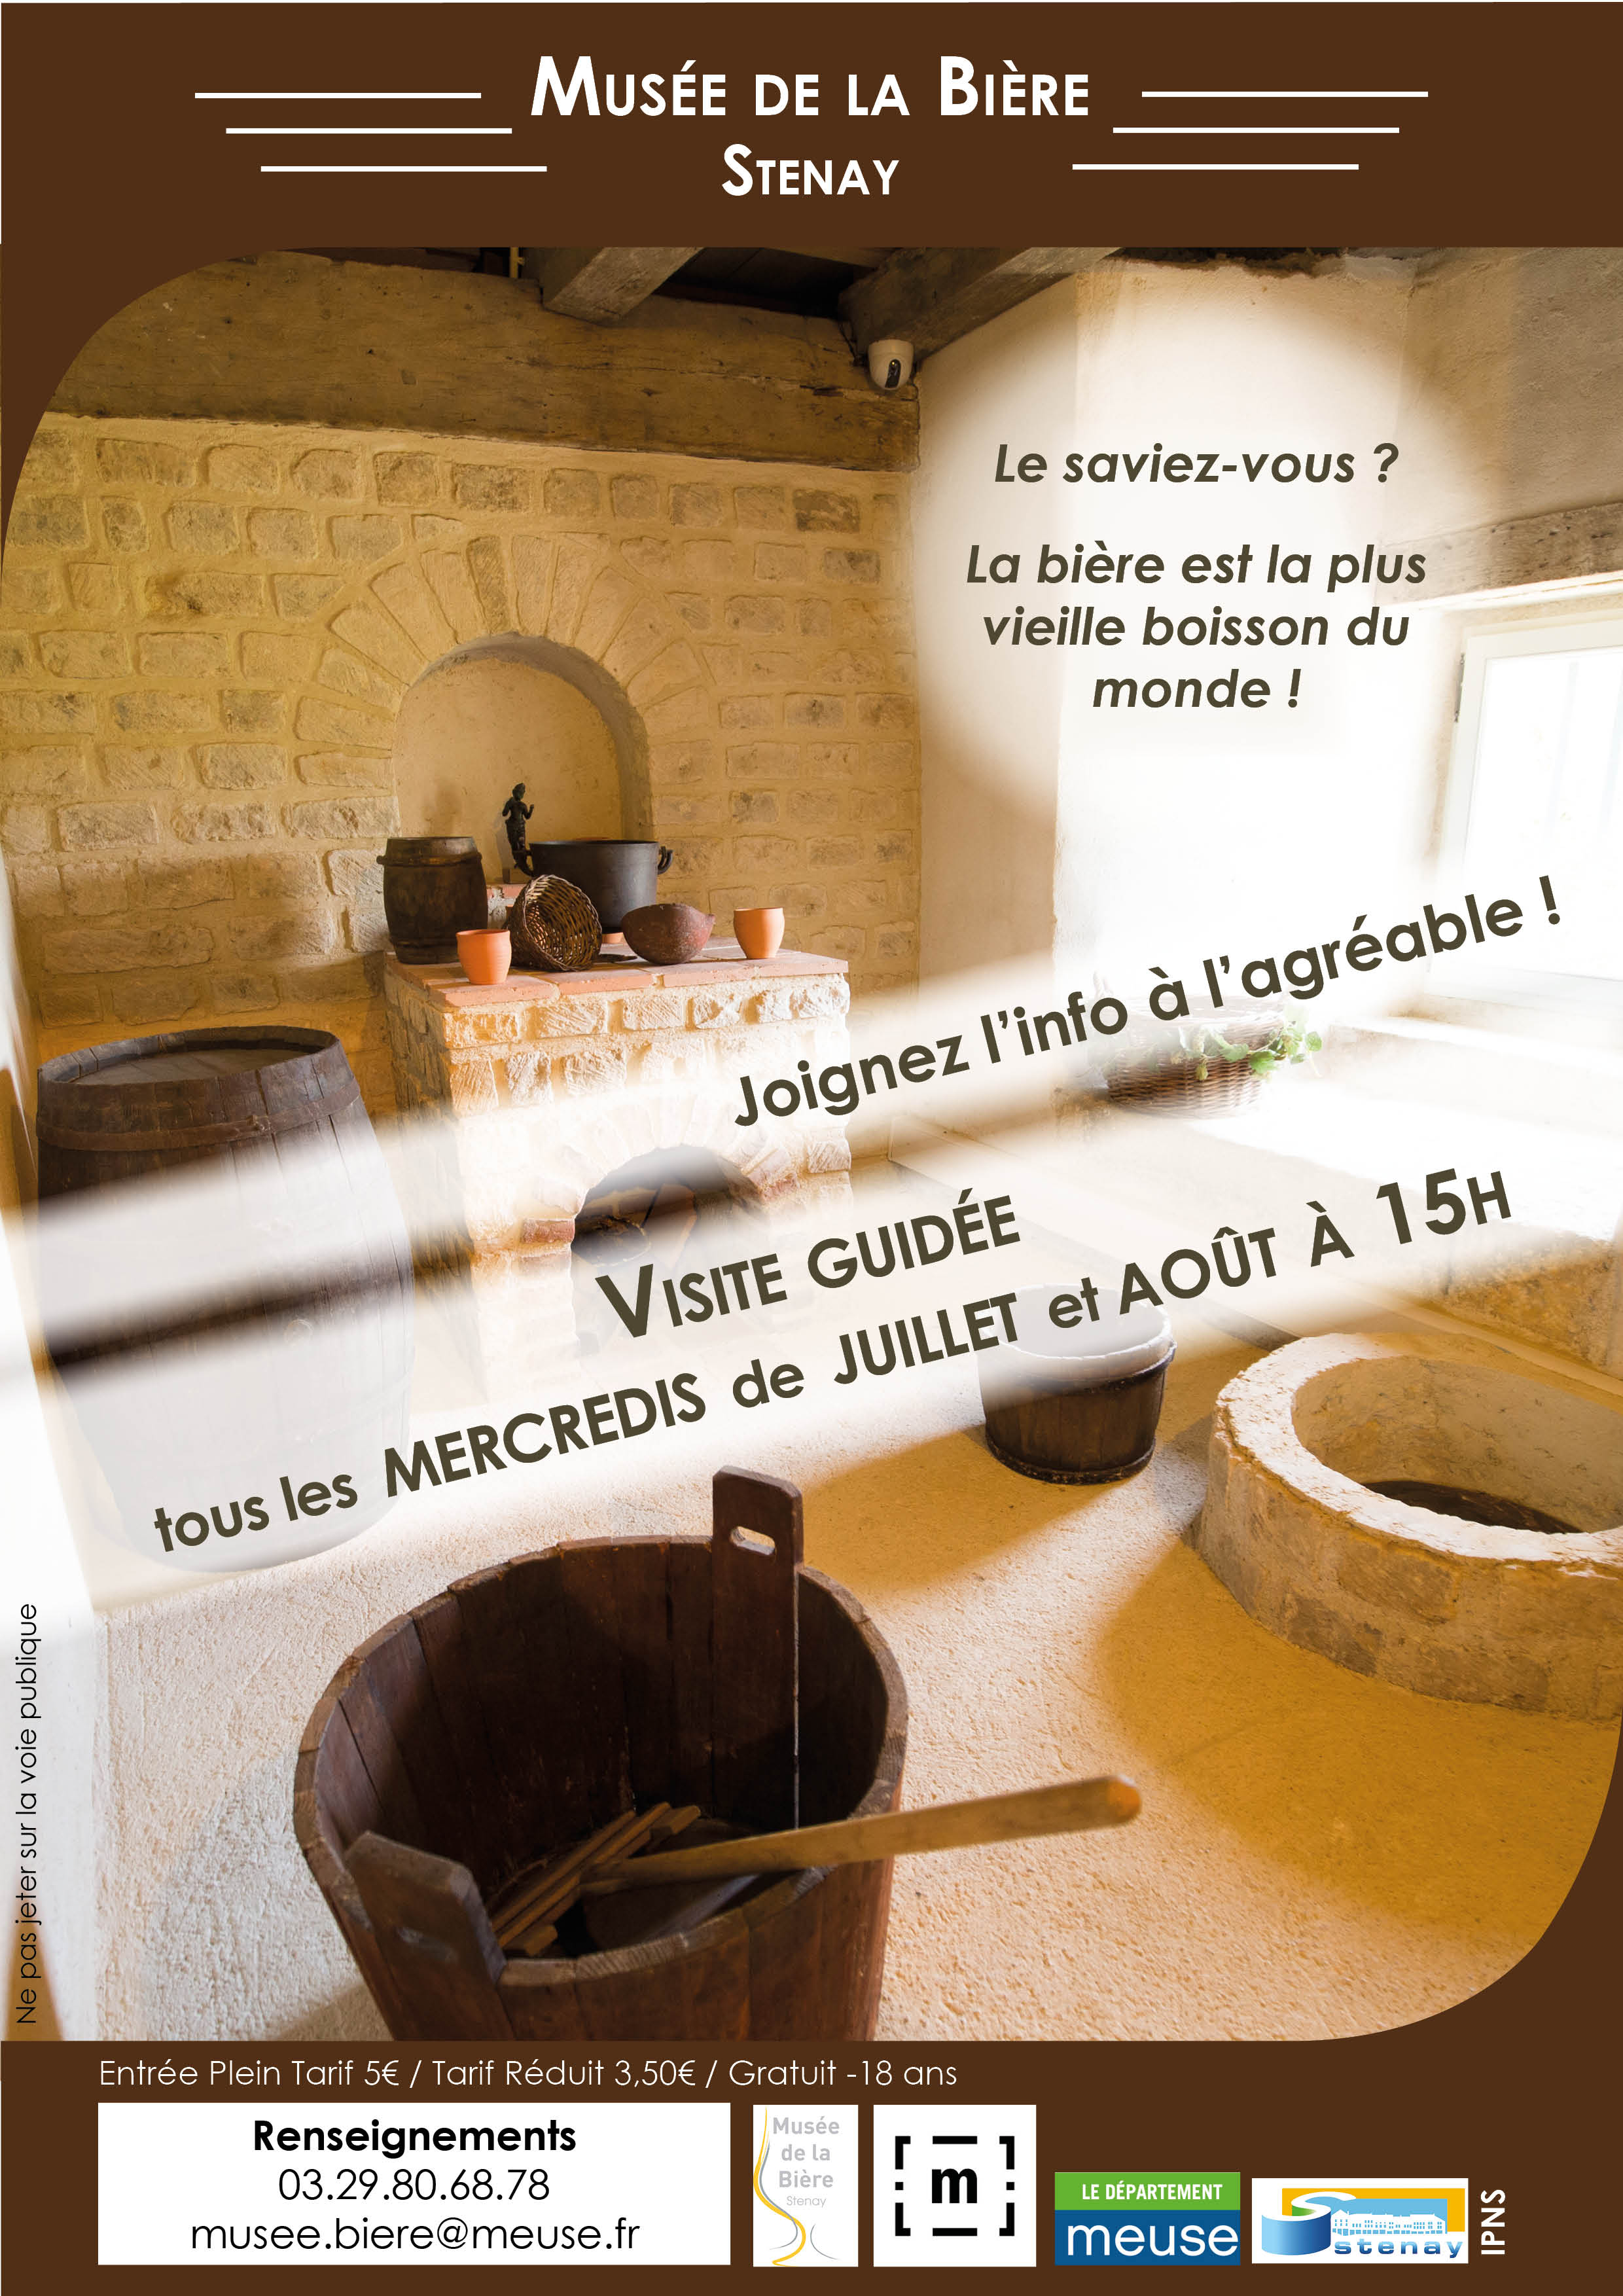 musee-biere-stenay-visites-guidees-juillet-aout